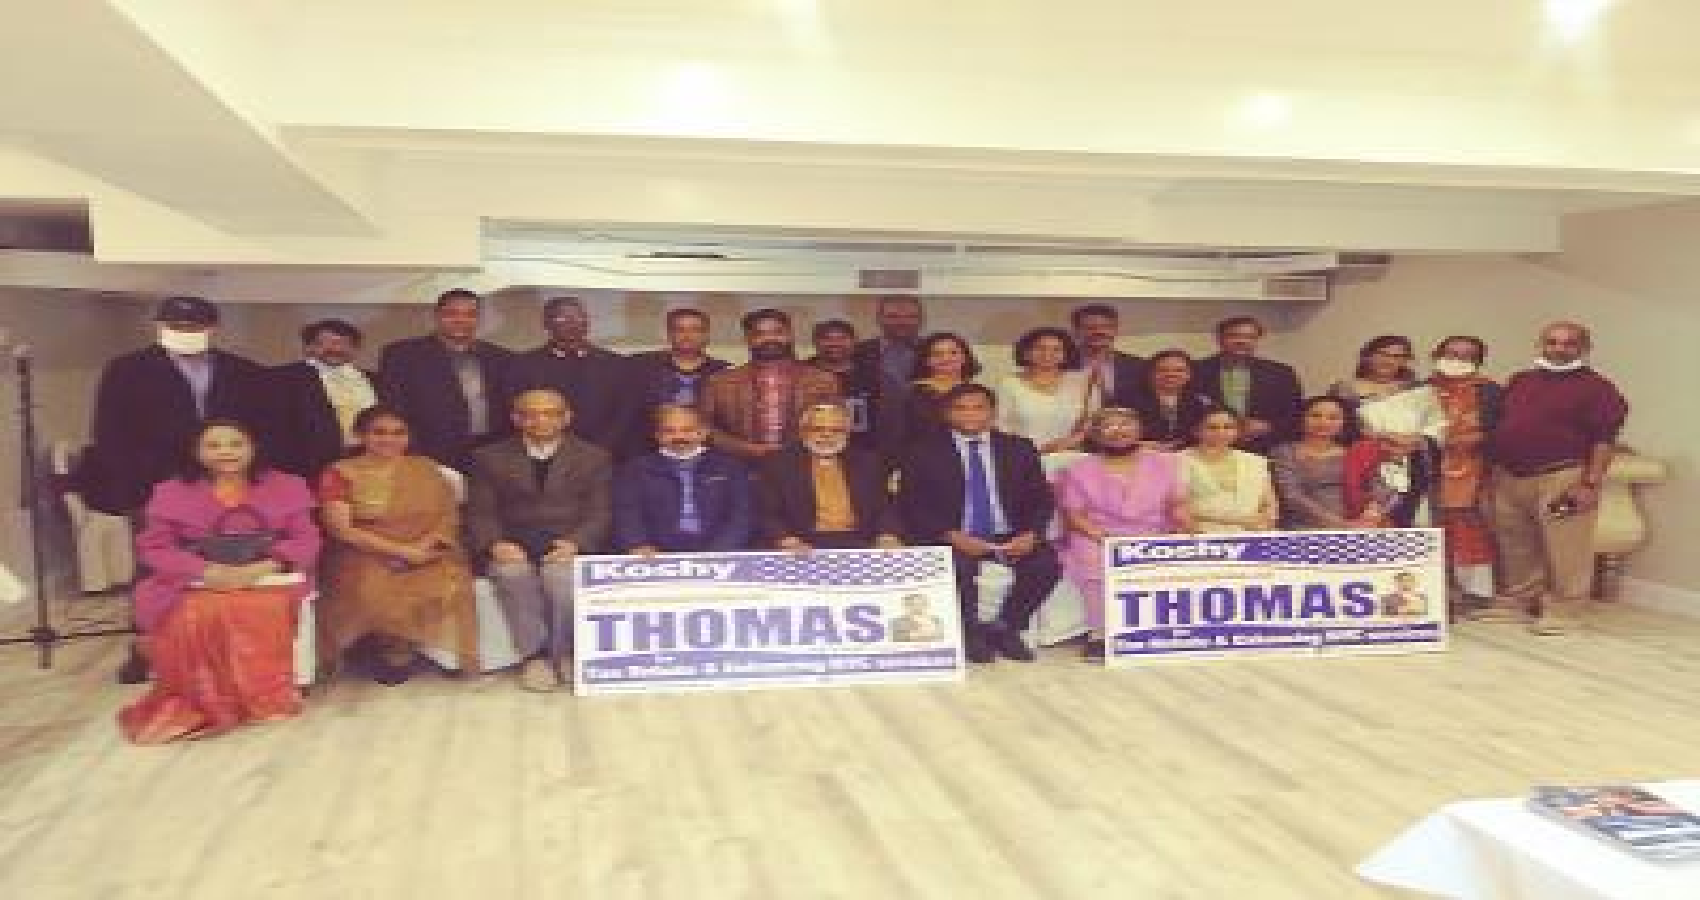 With Strong Support From Communities, Koshy Thomas' Candidacy for District 23 of NYC Council Gaining momentum